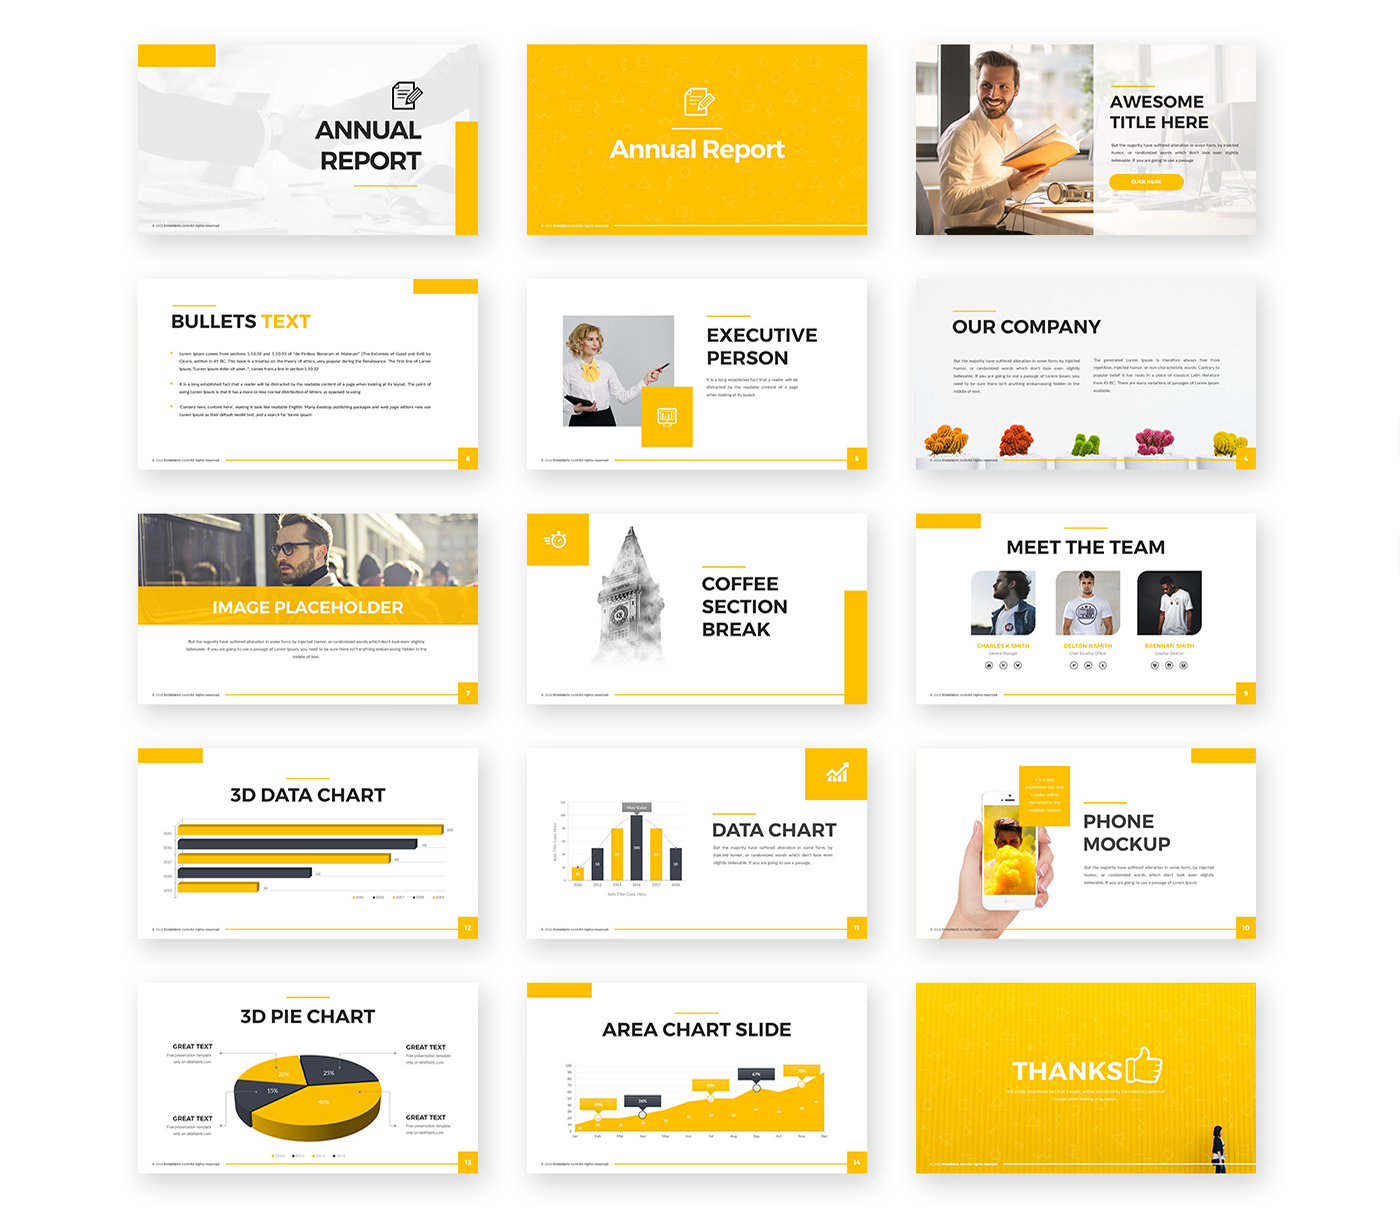 Annual Report Powerpoint Template Pixelify Best Free Fonts Mockups Templates And Powerpoint Template Free Presentation Template Free Powerpoint Templates